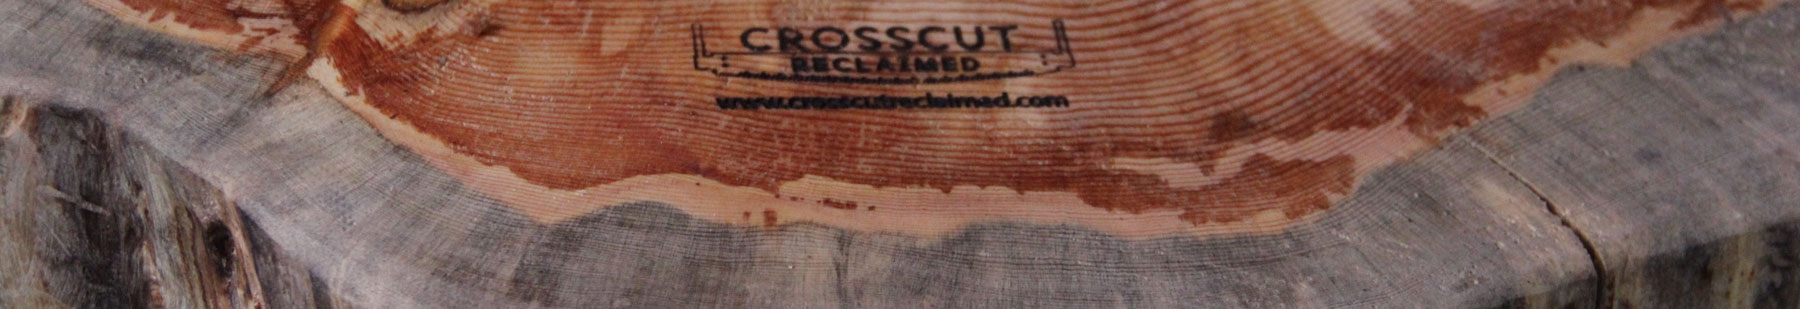 Crosscut Blog